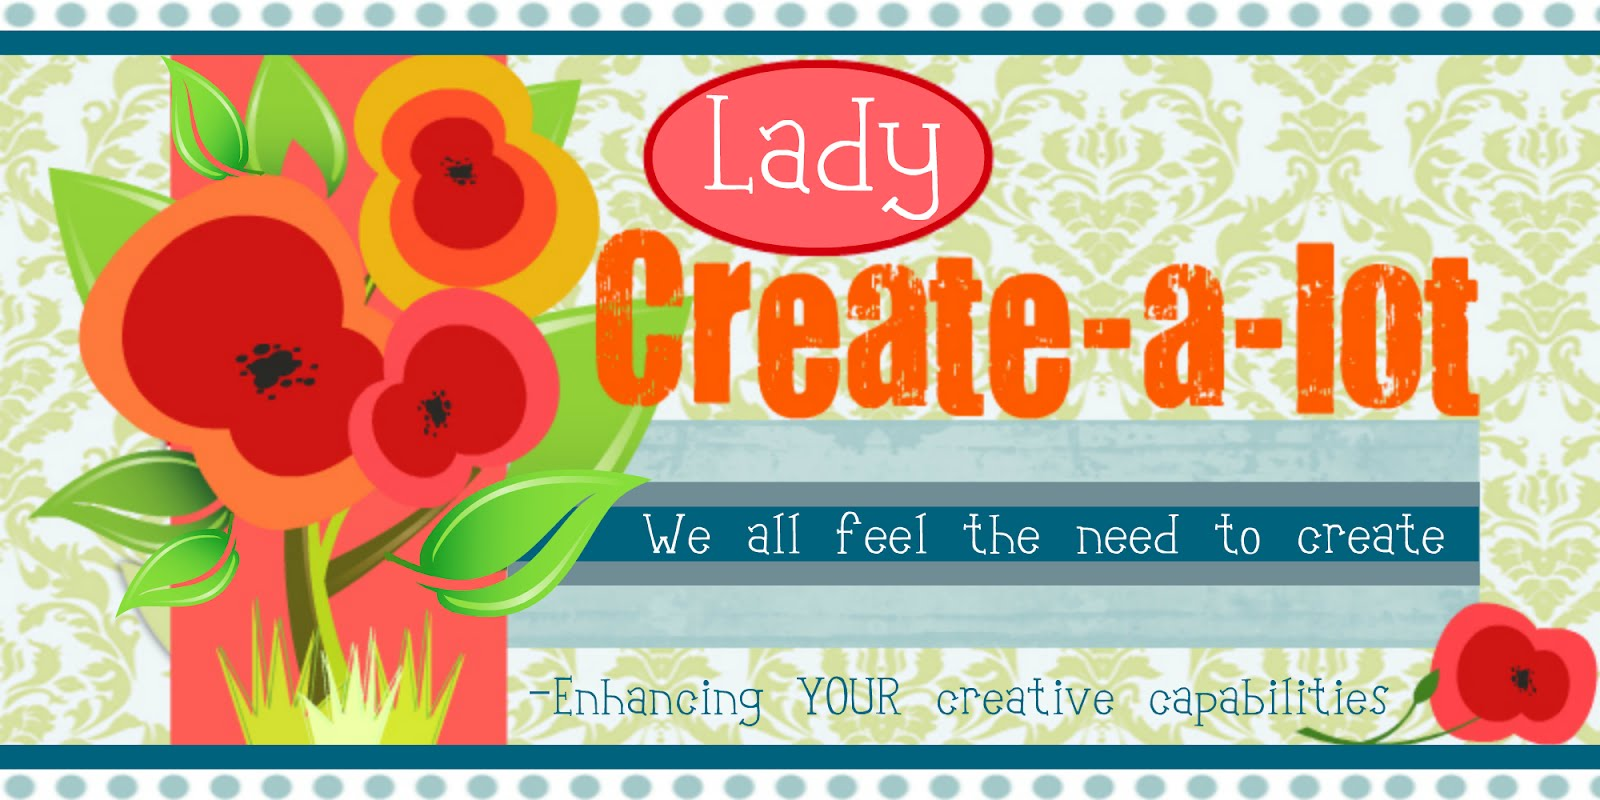 Lady Create-a-lot